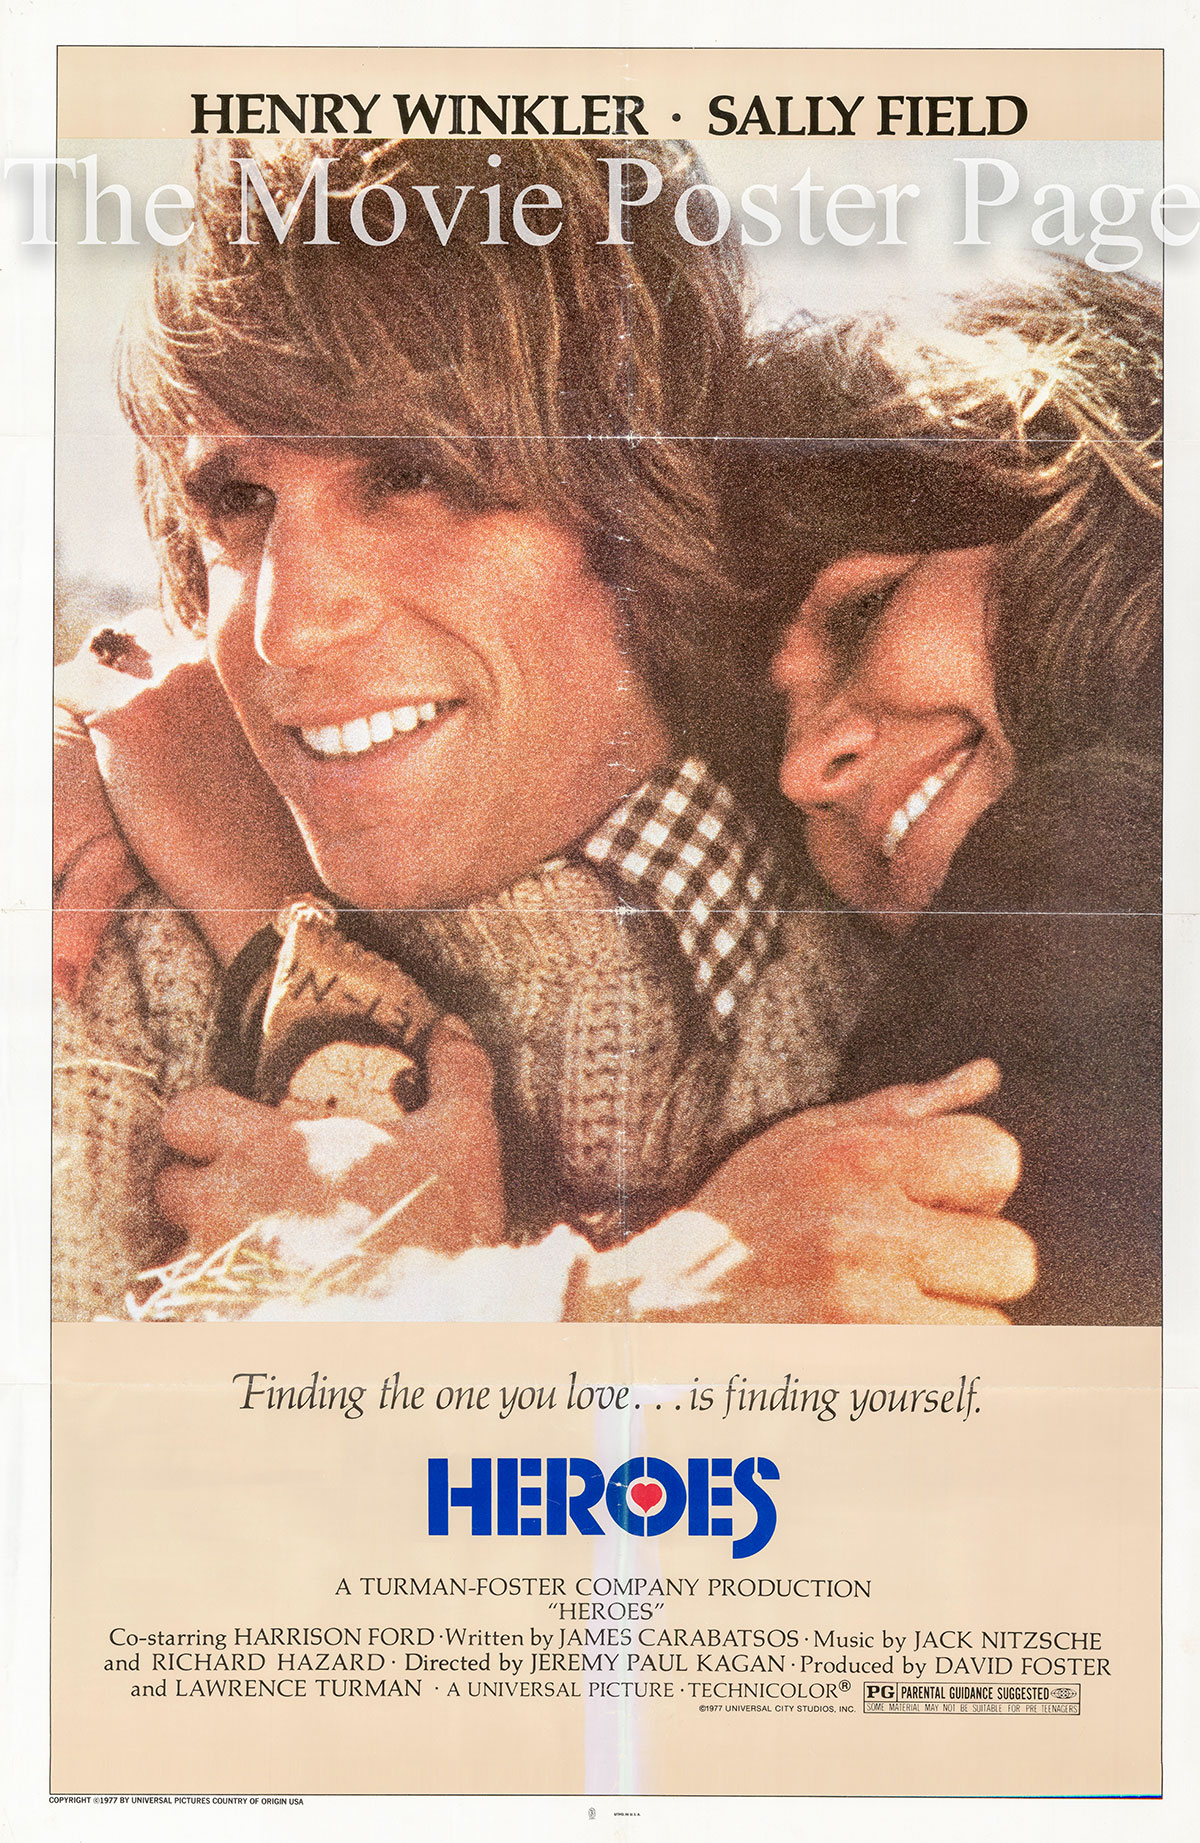 Pictured is a US one-sheet promotional poster for the 1977 Jeremy Paul Kagan film Heroes starring Sally Field.